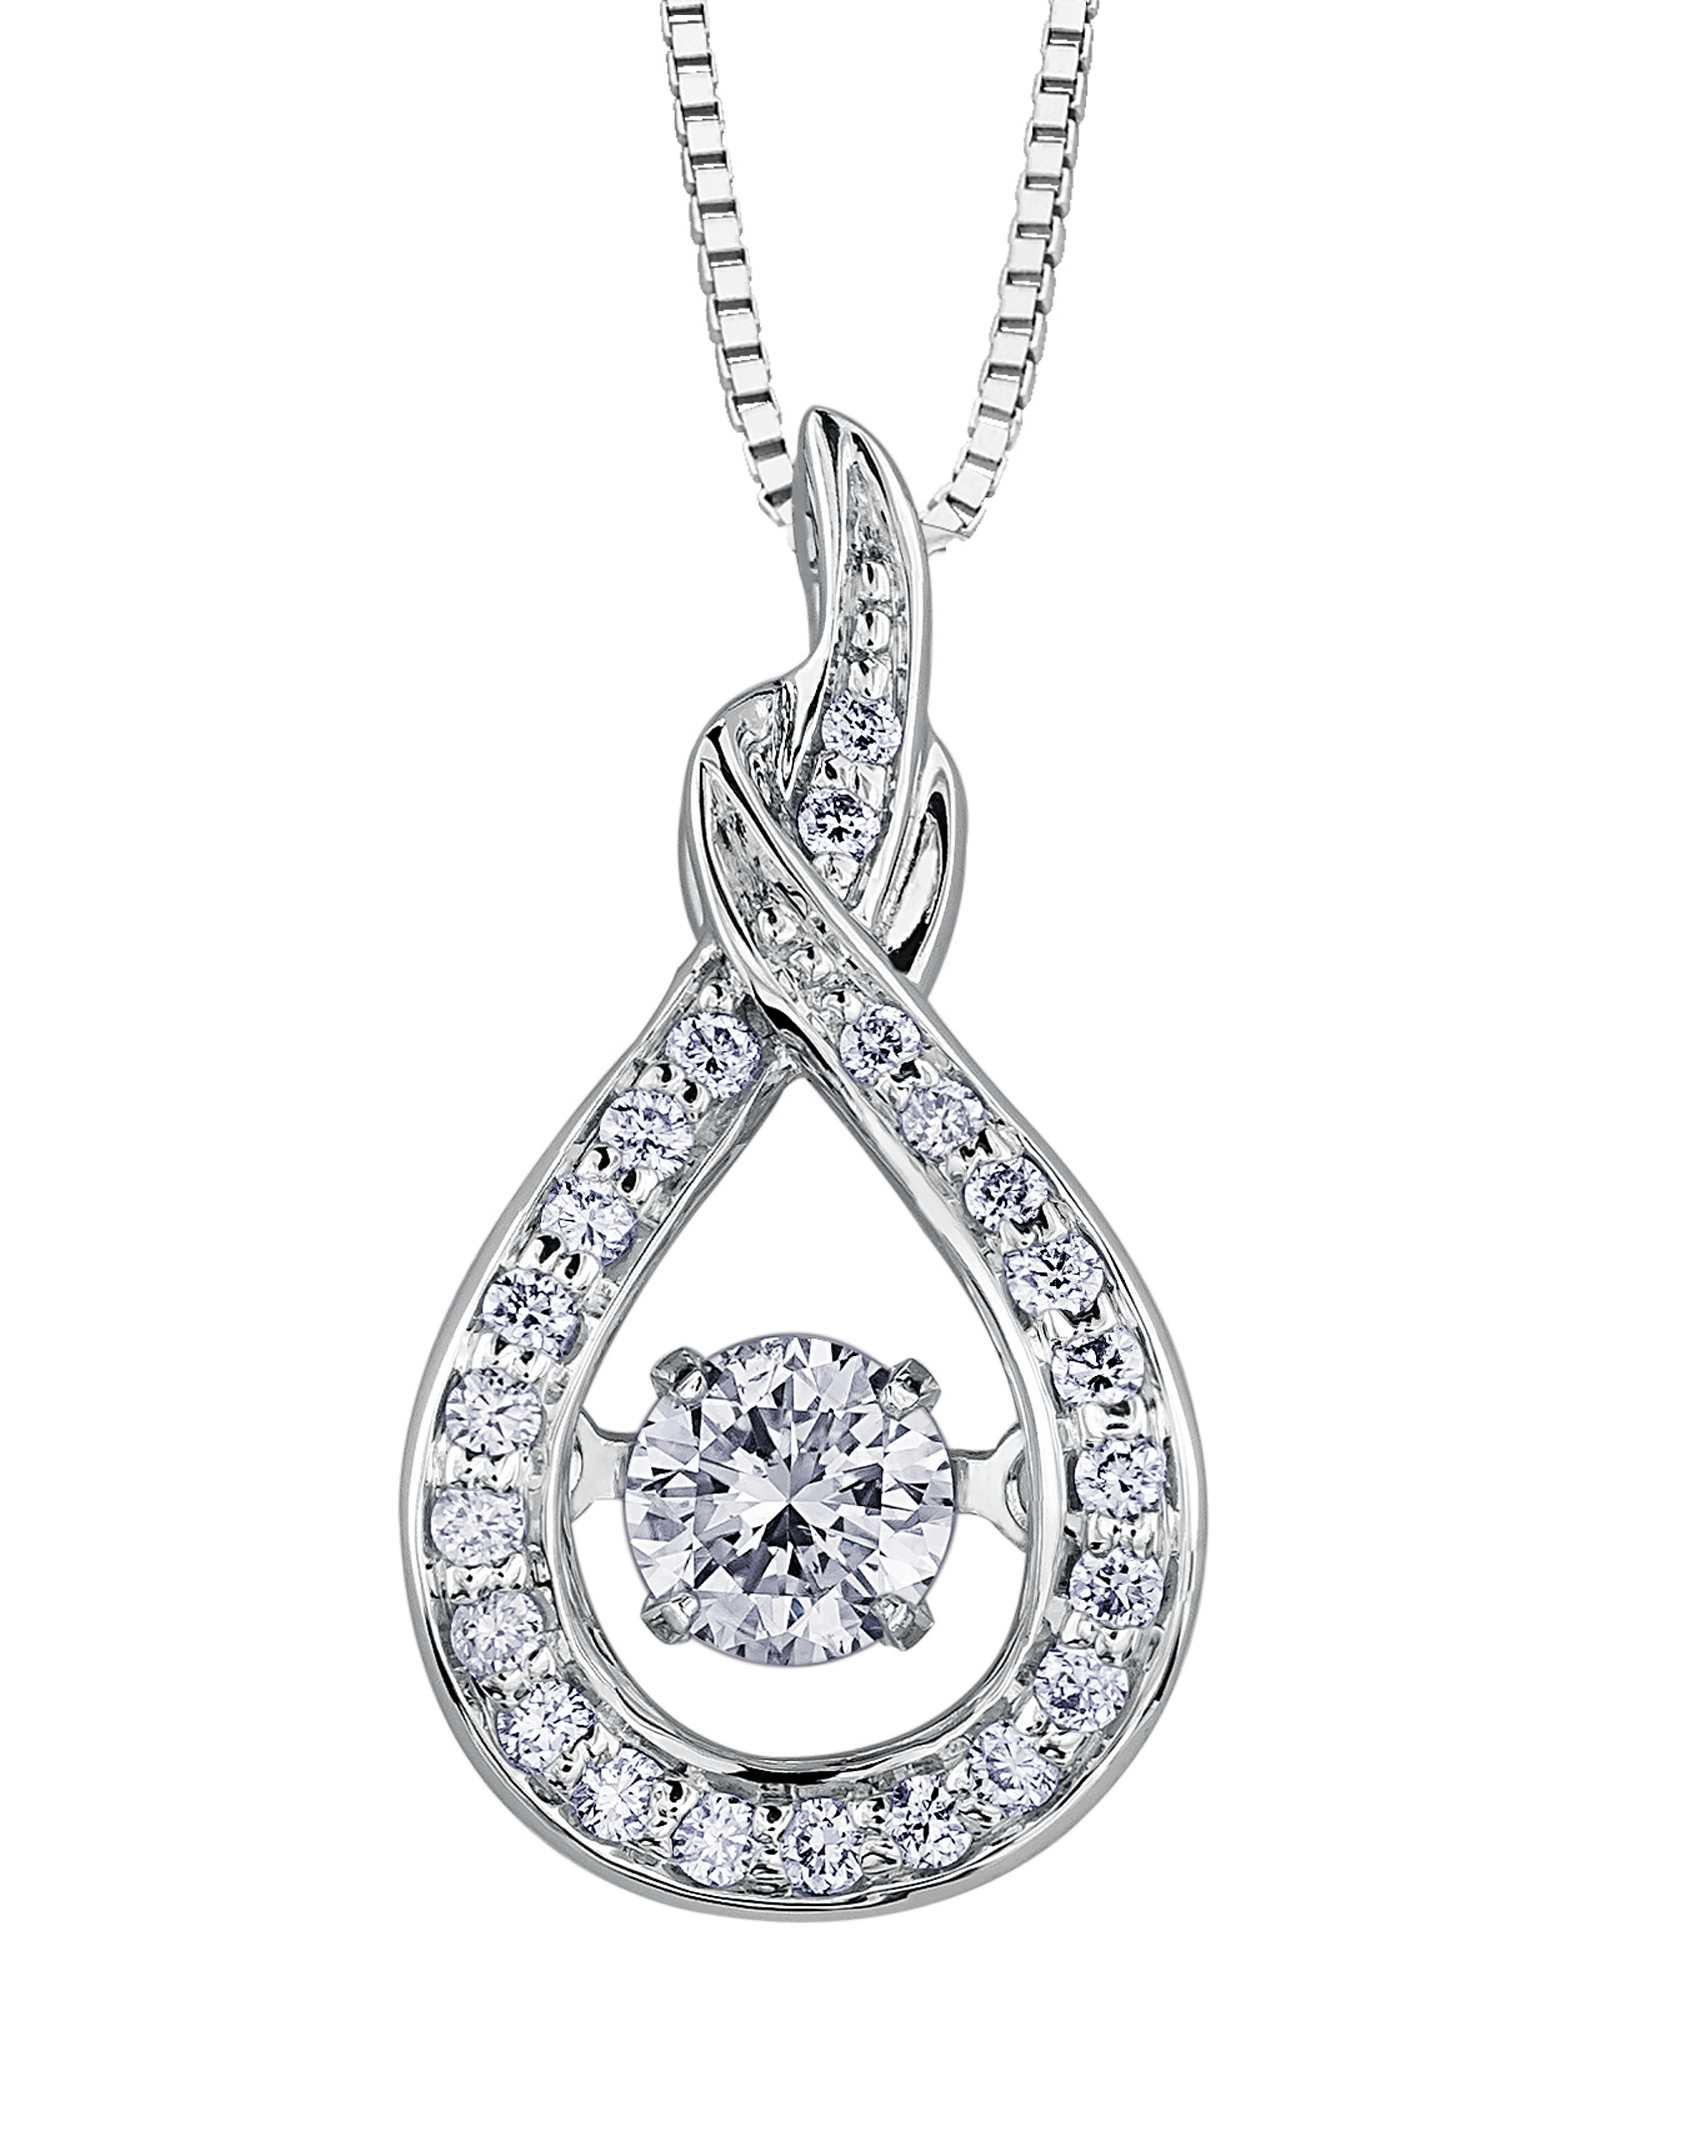 Pendentif - Or blanc 10K & Diamants Canadiens totalisant 0.18 Carat